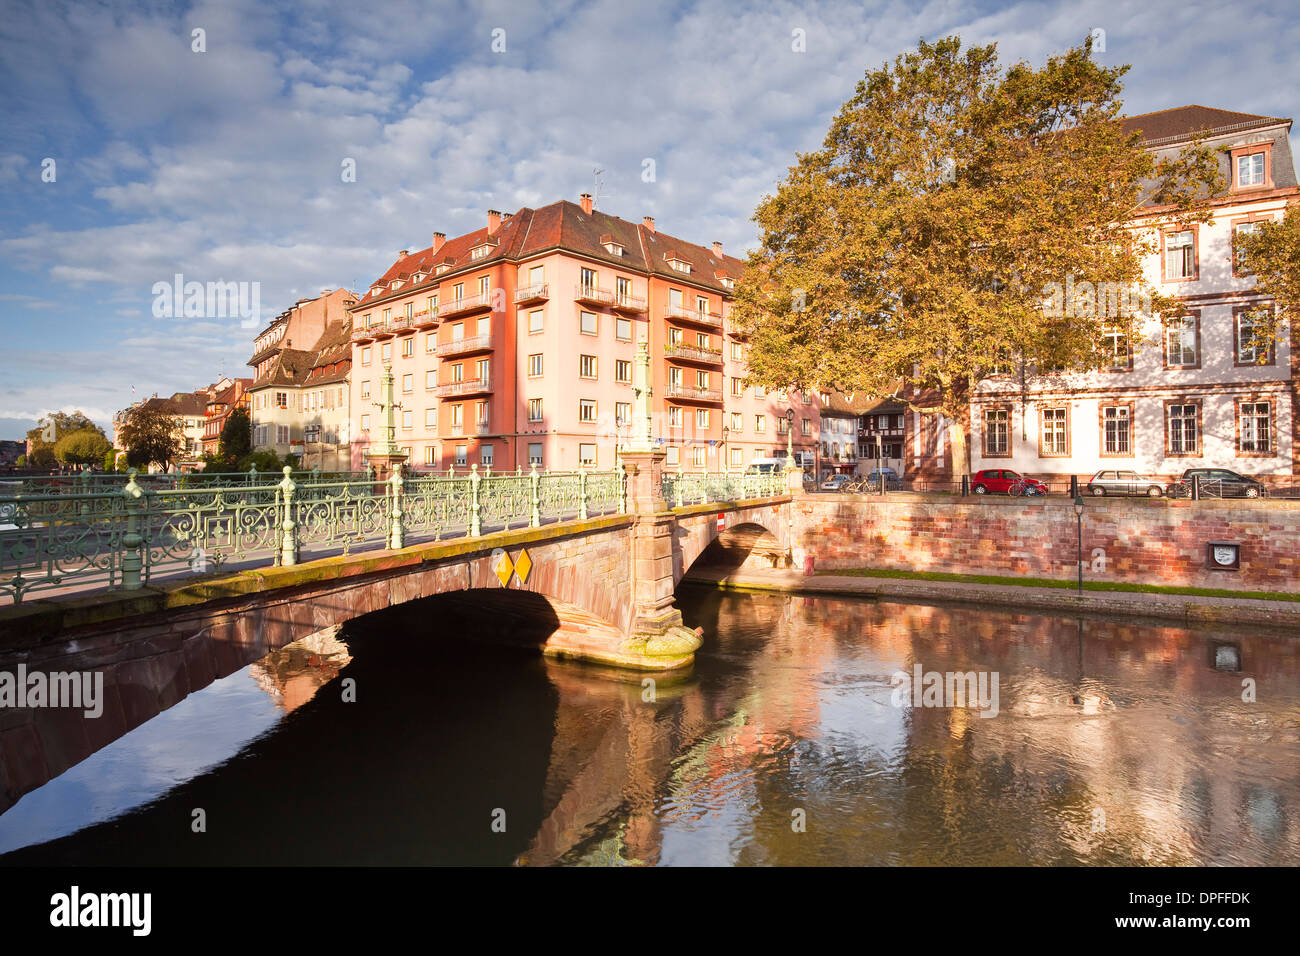 Buildings reflected in the River Ill, Strasbourg, Bas-Rhin, Alsace, France, Europe - Stock Image